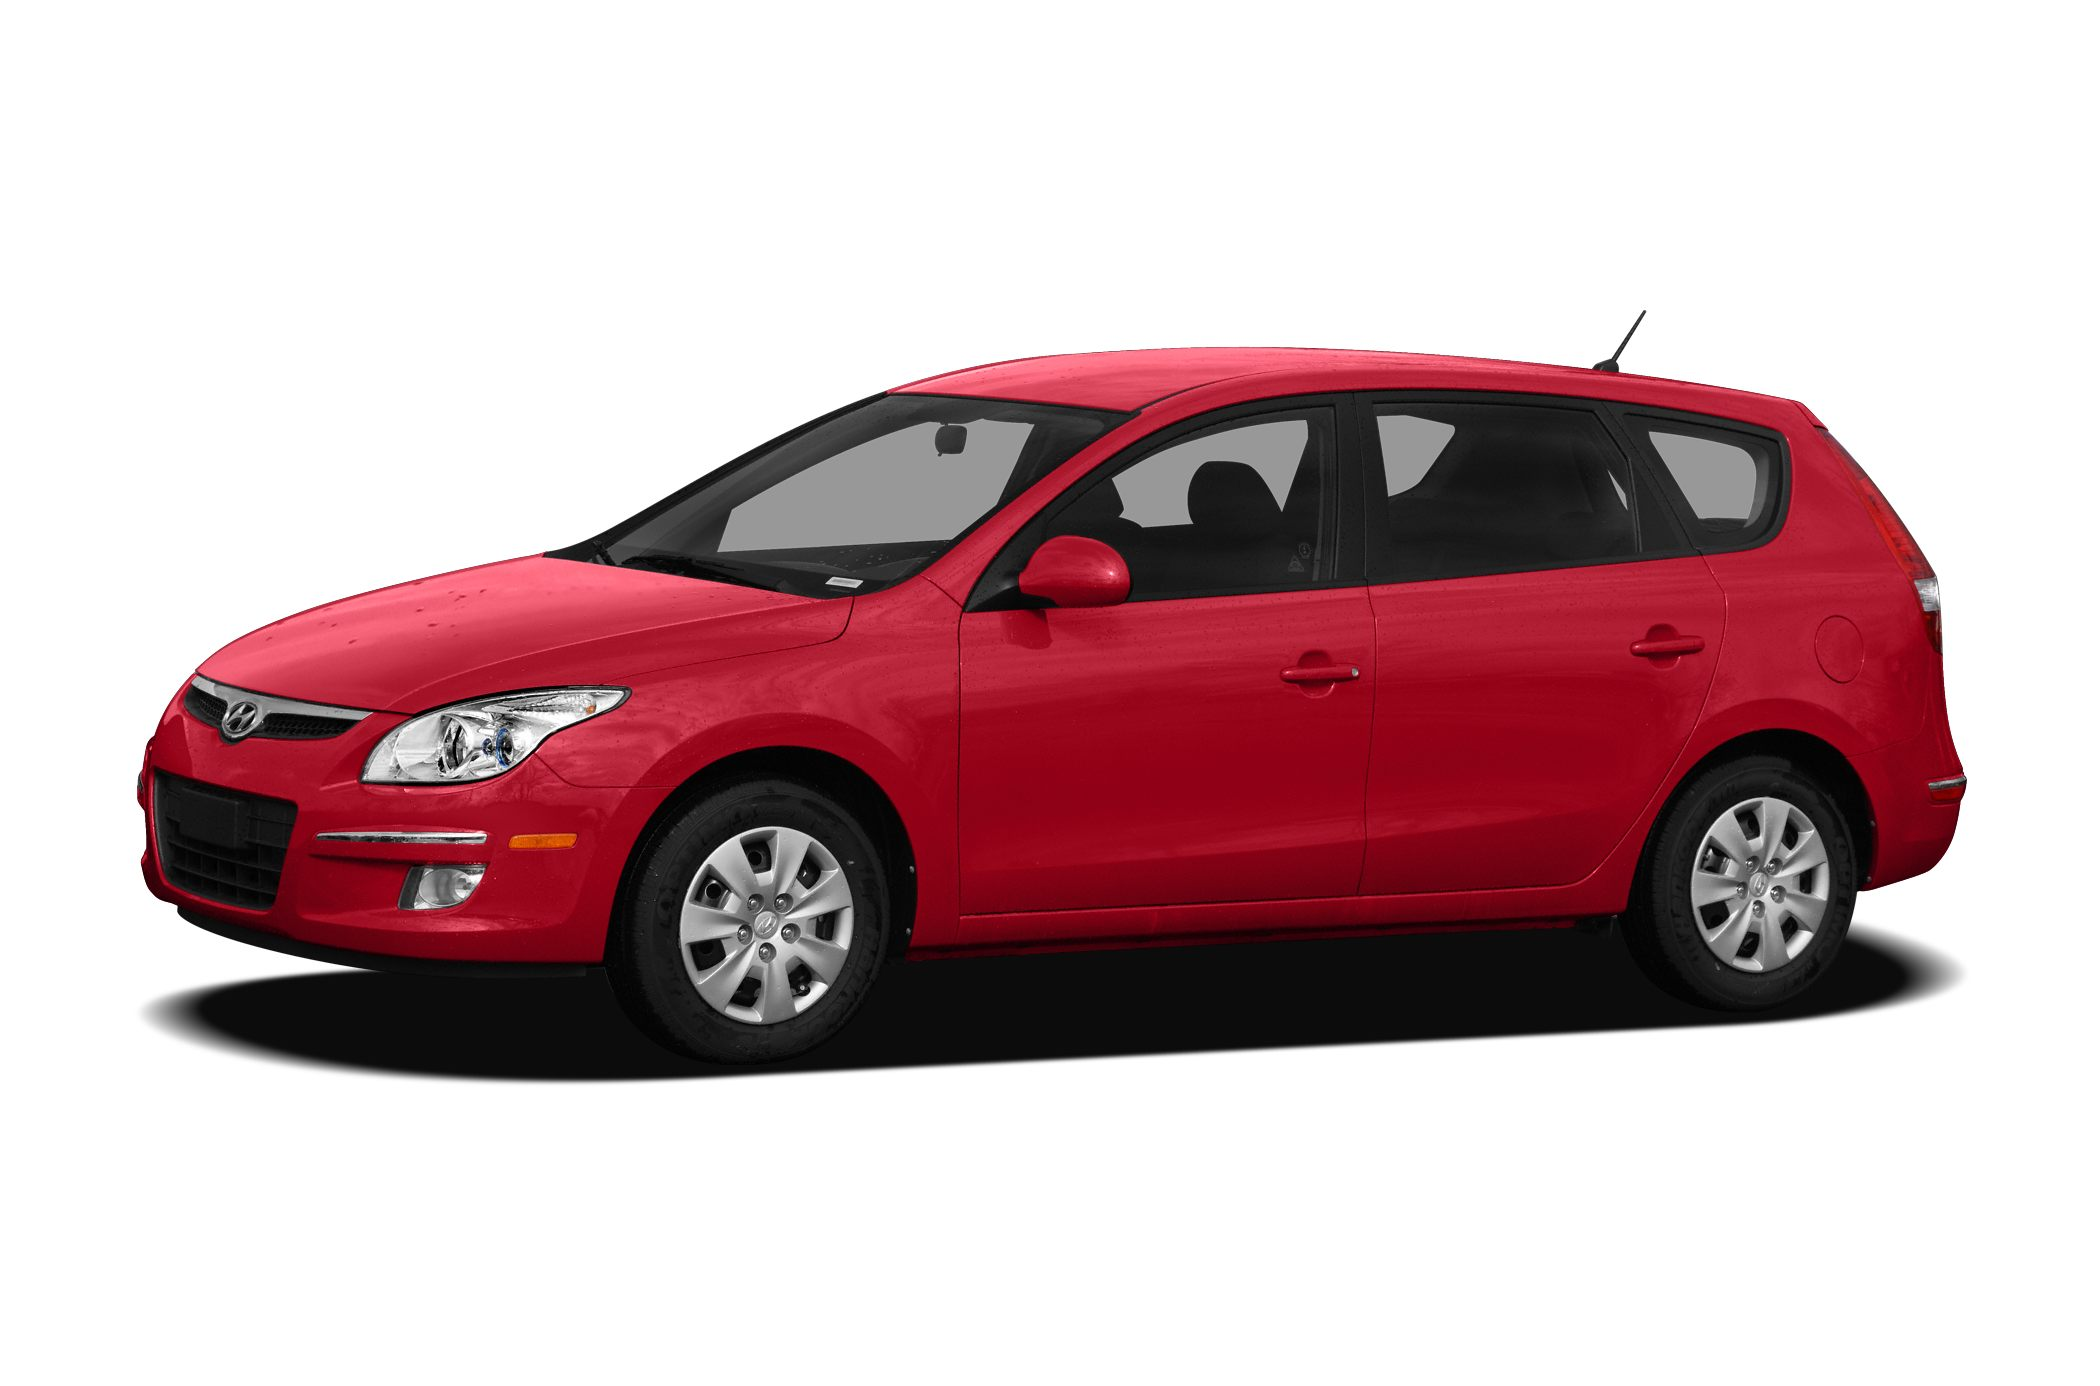 Hyundai Elantra Touring News Photos And Buying